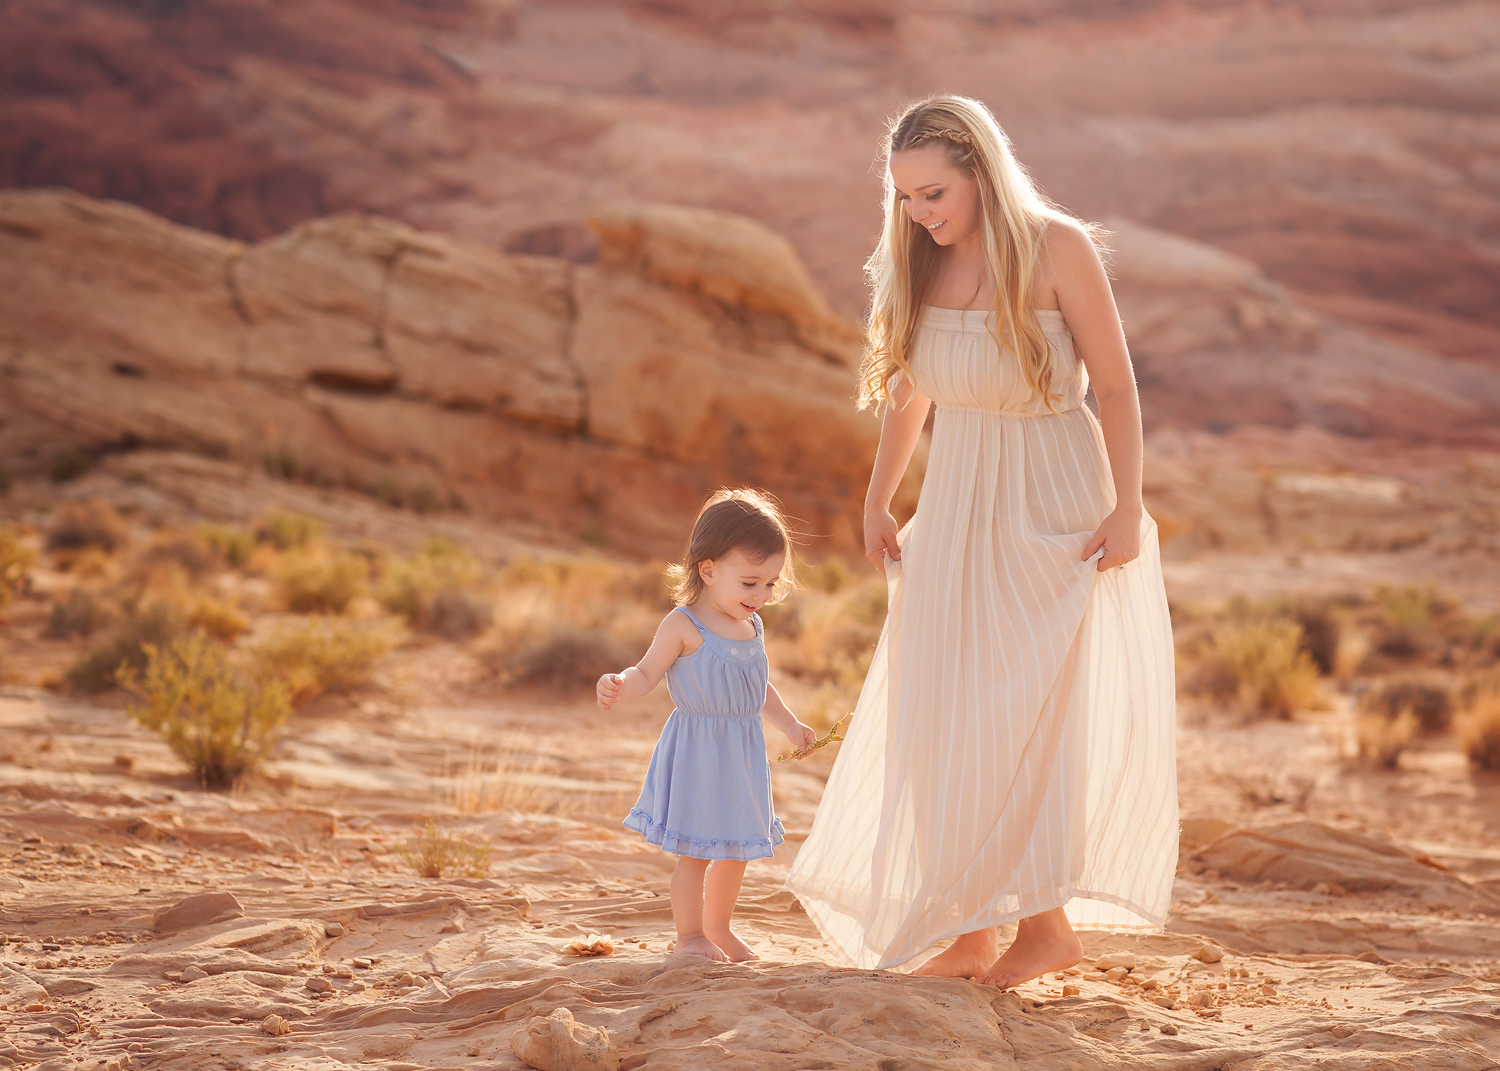 Las vegas baby and child photography Las Vegas Baby, Children and Family Photographer